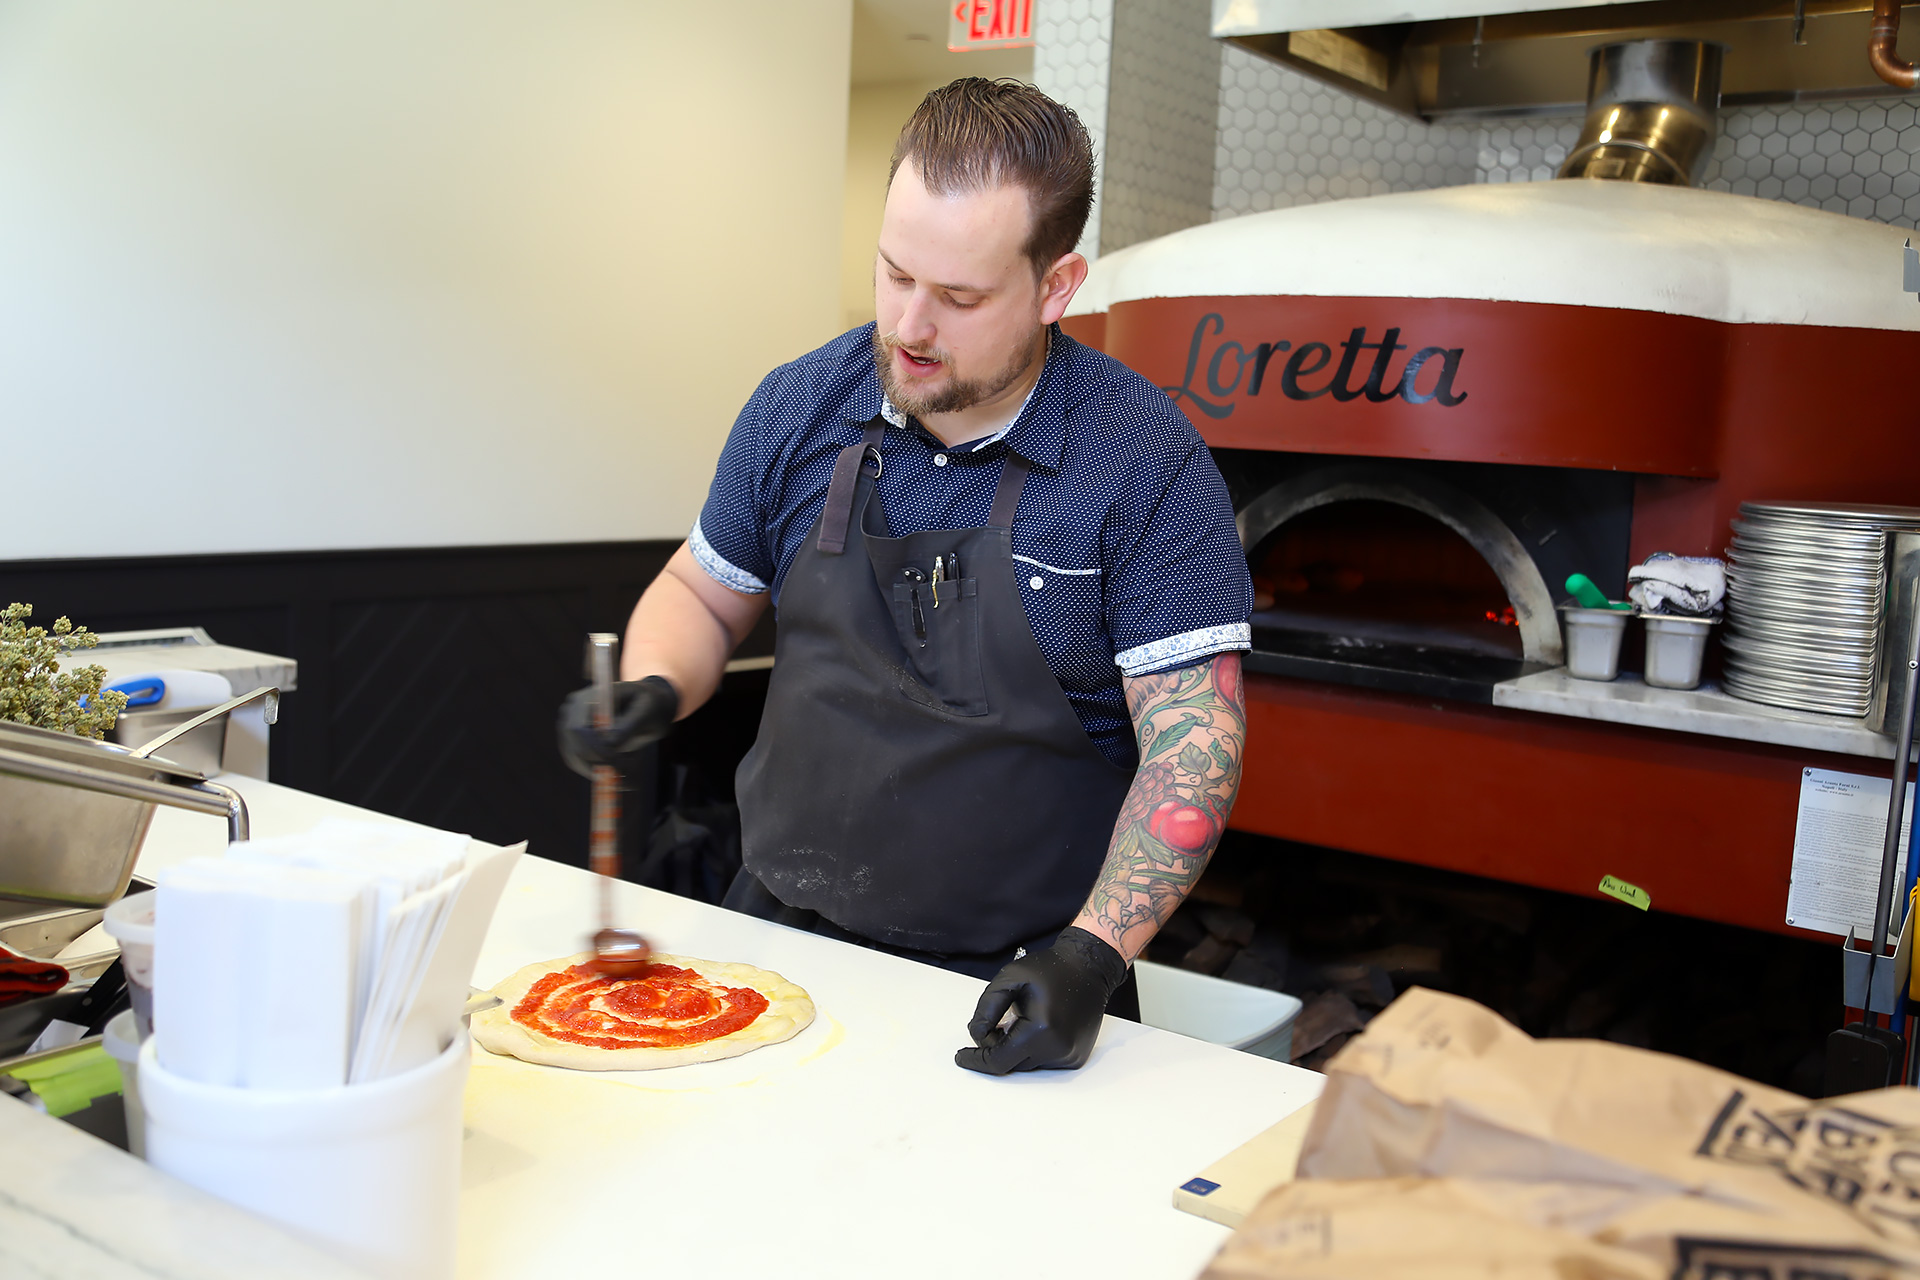 Adding the sauce to the pizze dough